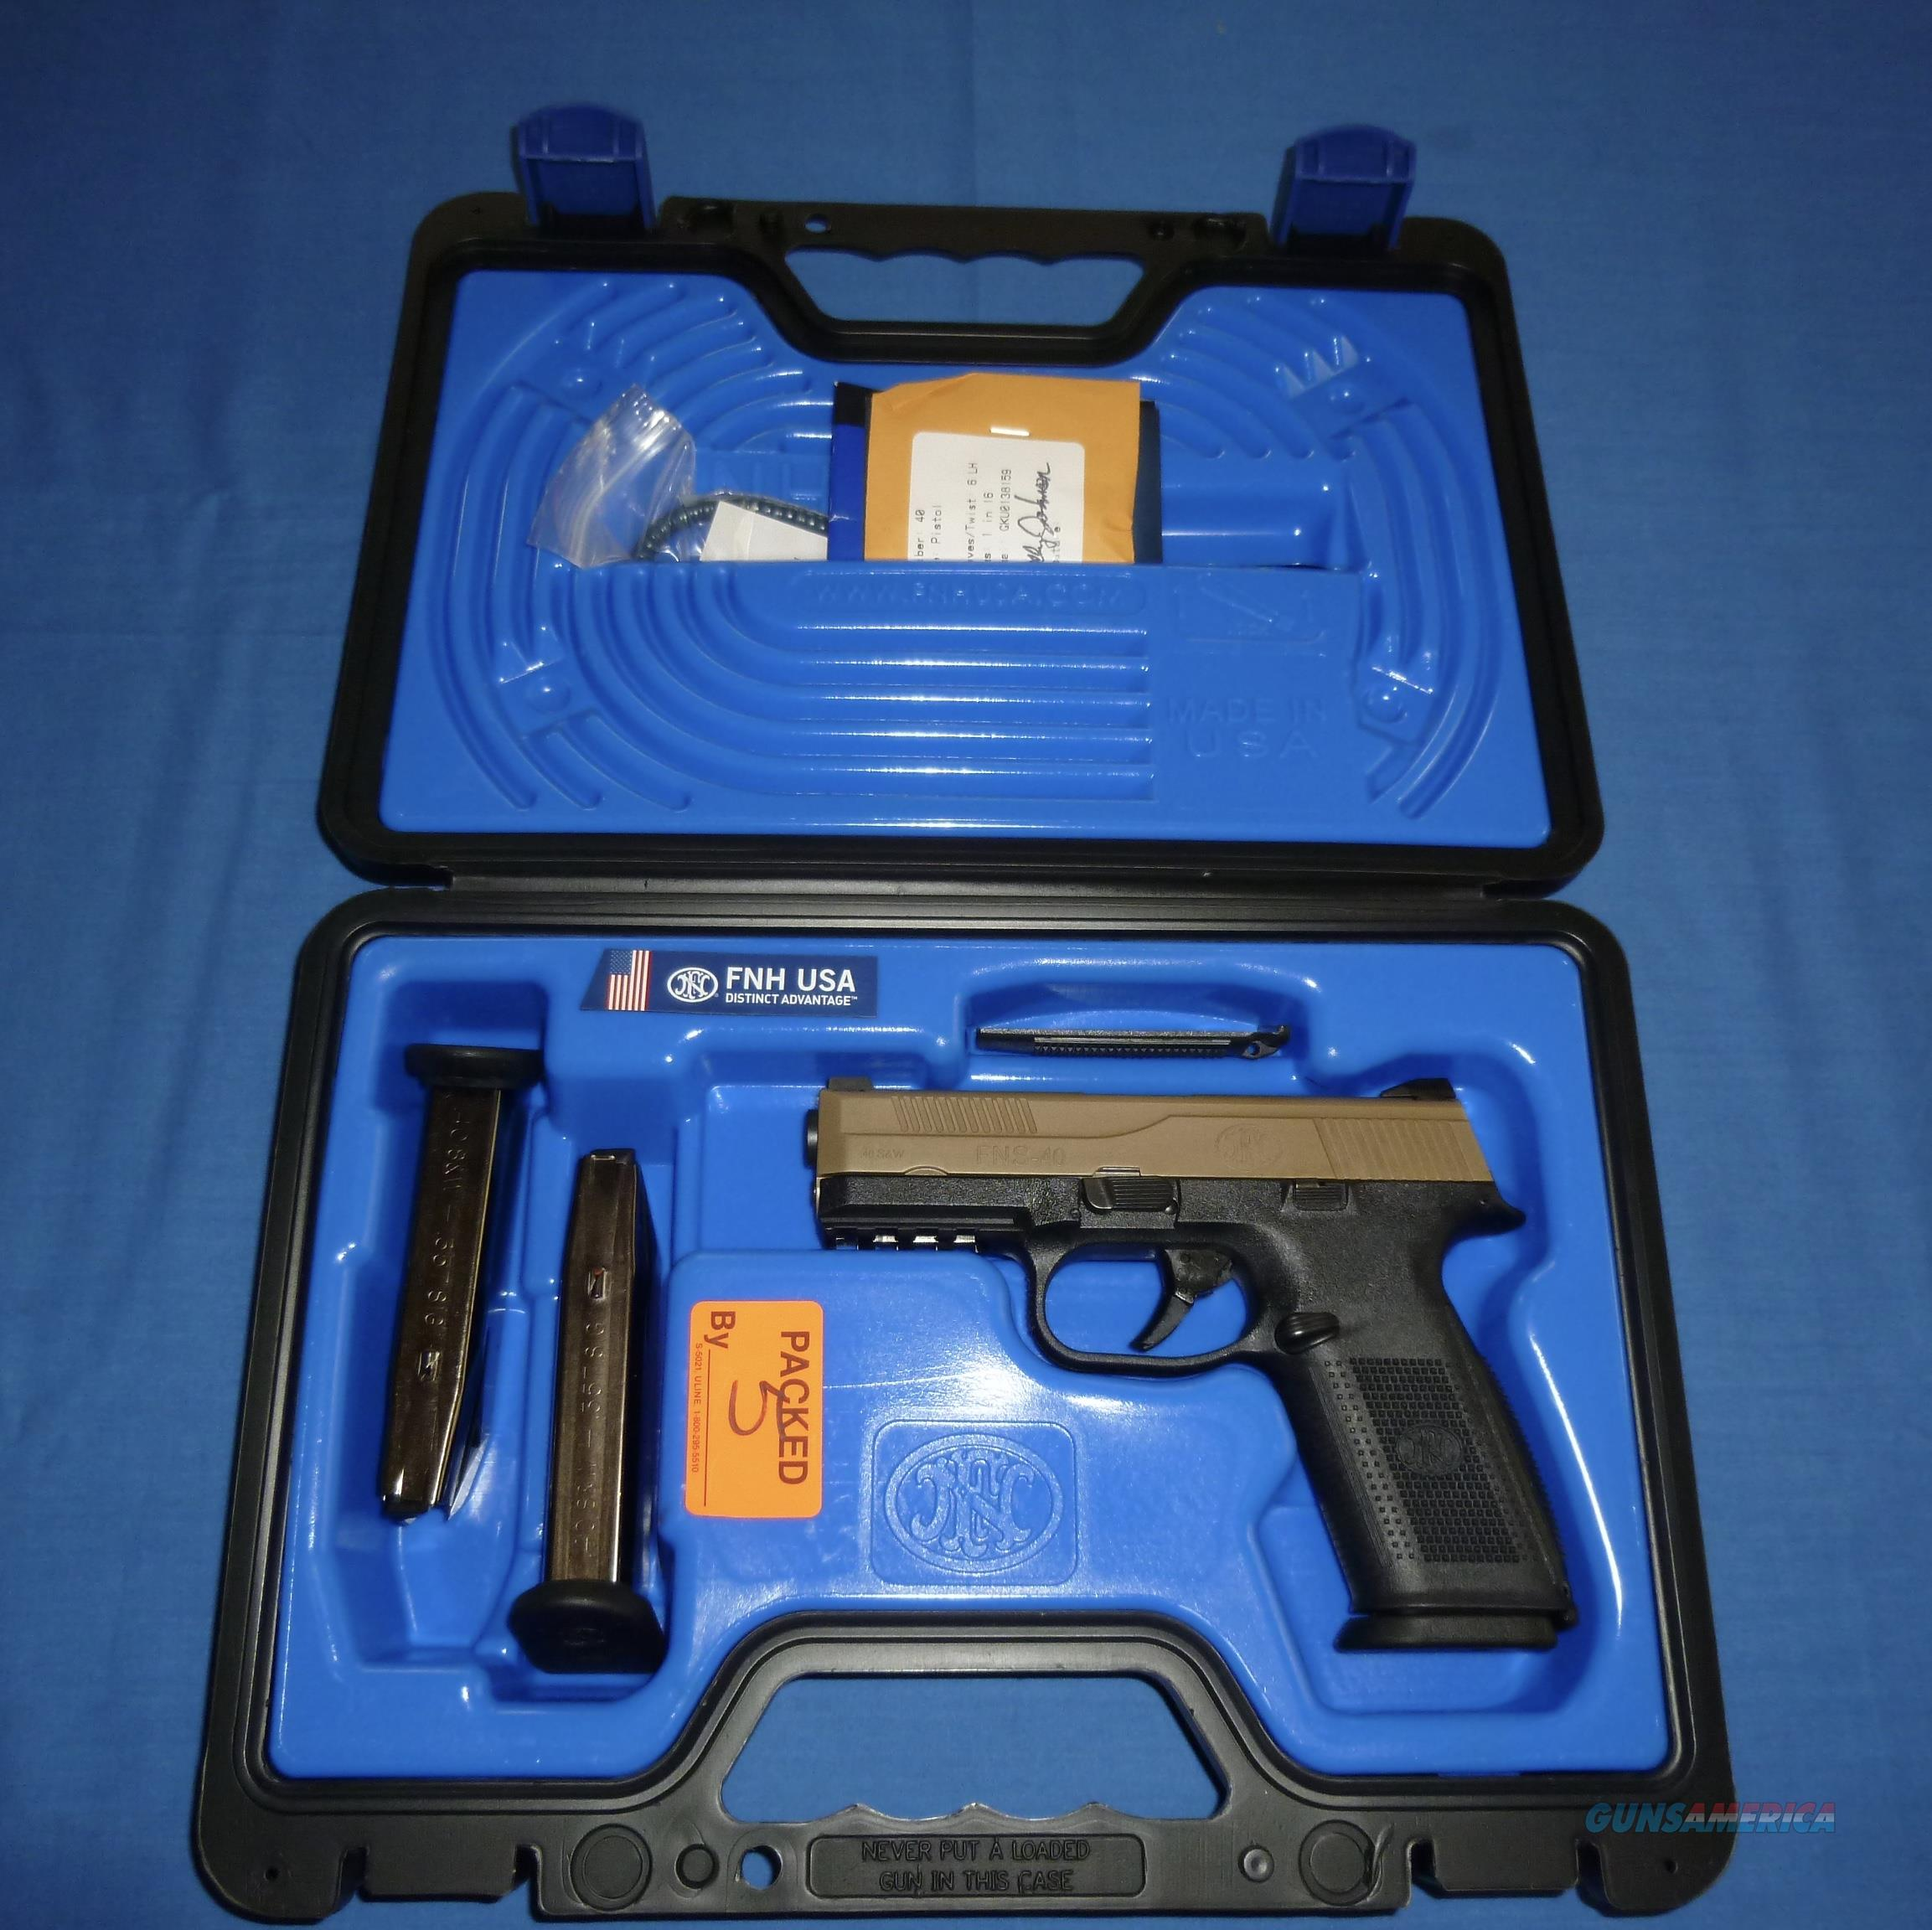 FNH-USA FNS-40 40 CALIBER PISTOL W/FLAT DARK EARTH SLIDE NEW!  Guns > Pistols > FNH - Fabrique Nationale (FN) Pistols > FNS